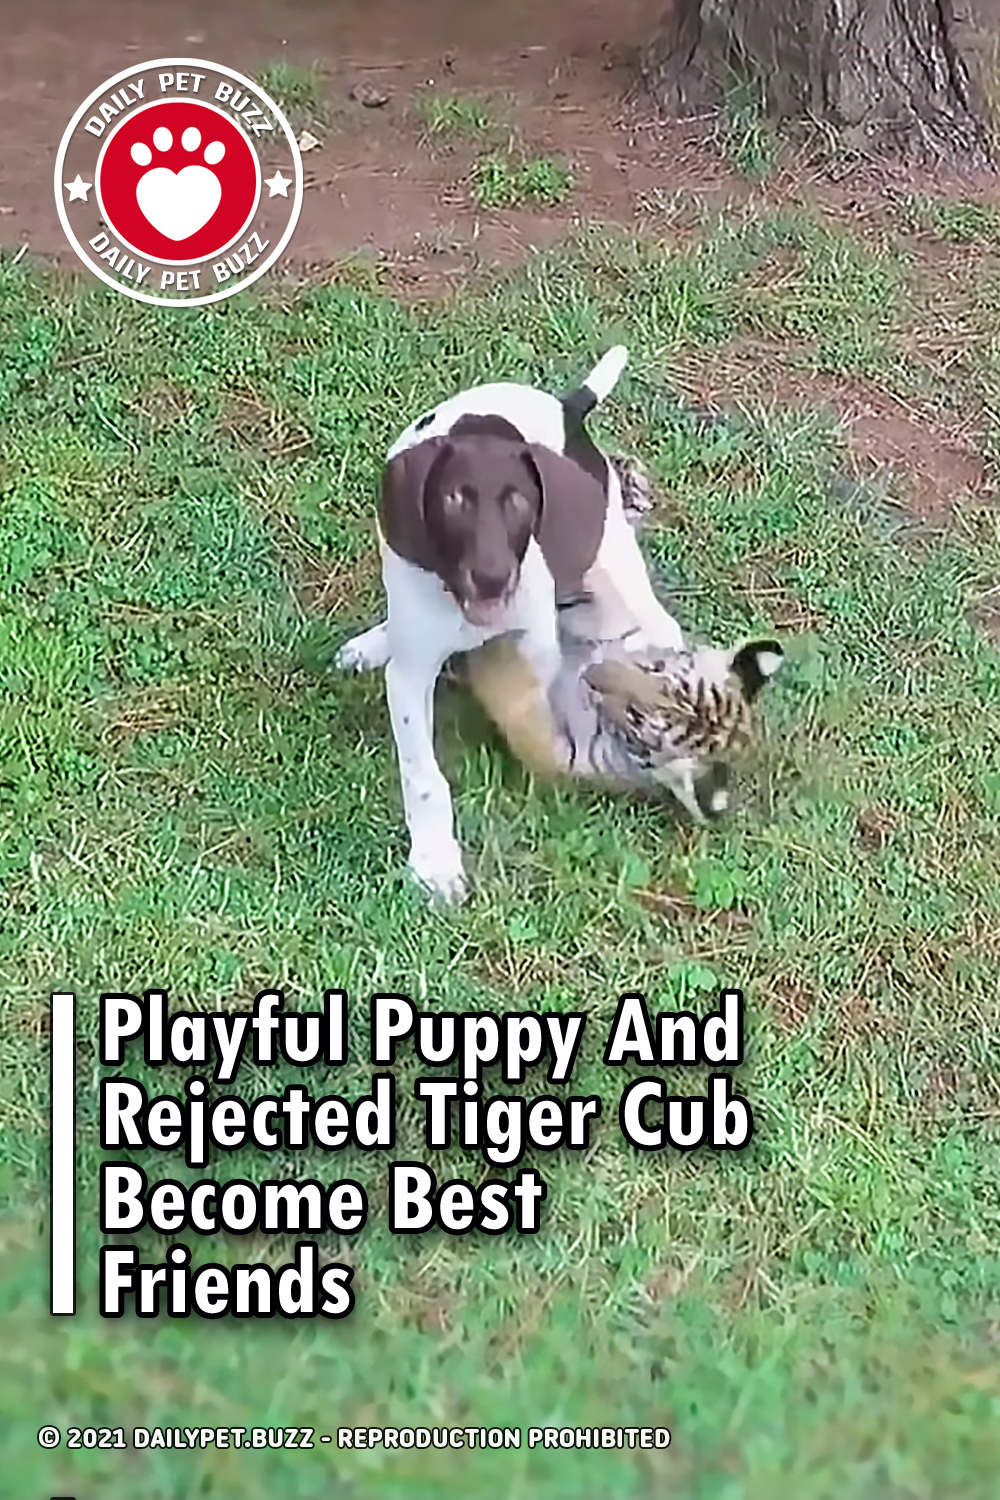 Playful Puppy And Rejected Tiger Cub Become Best Friends